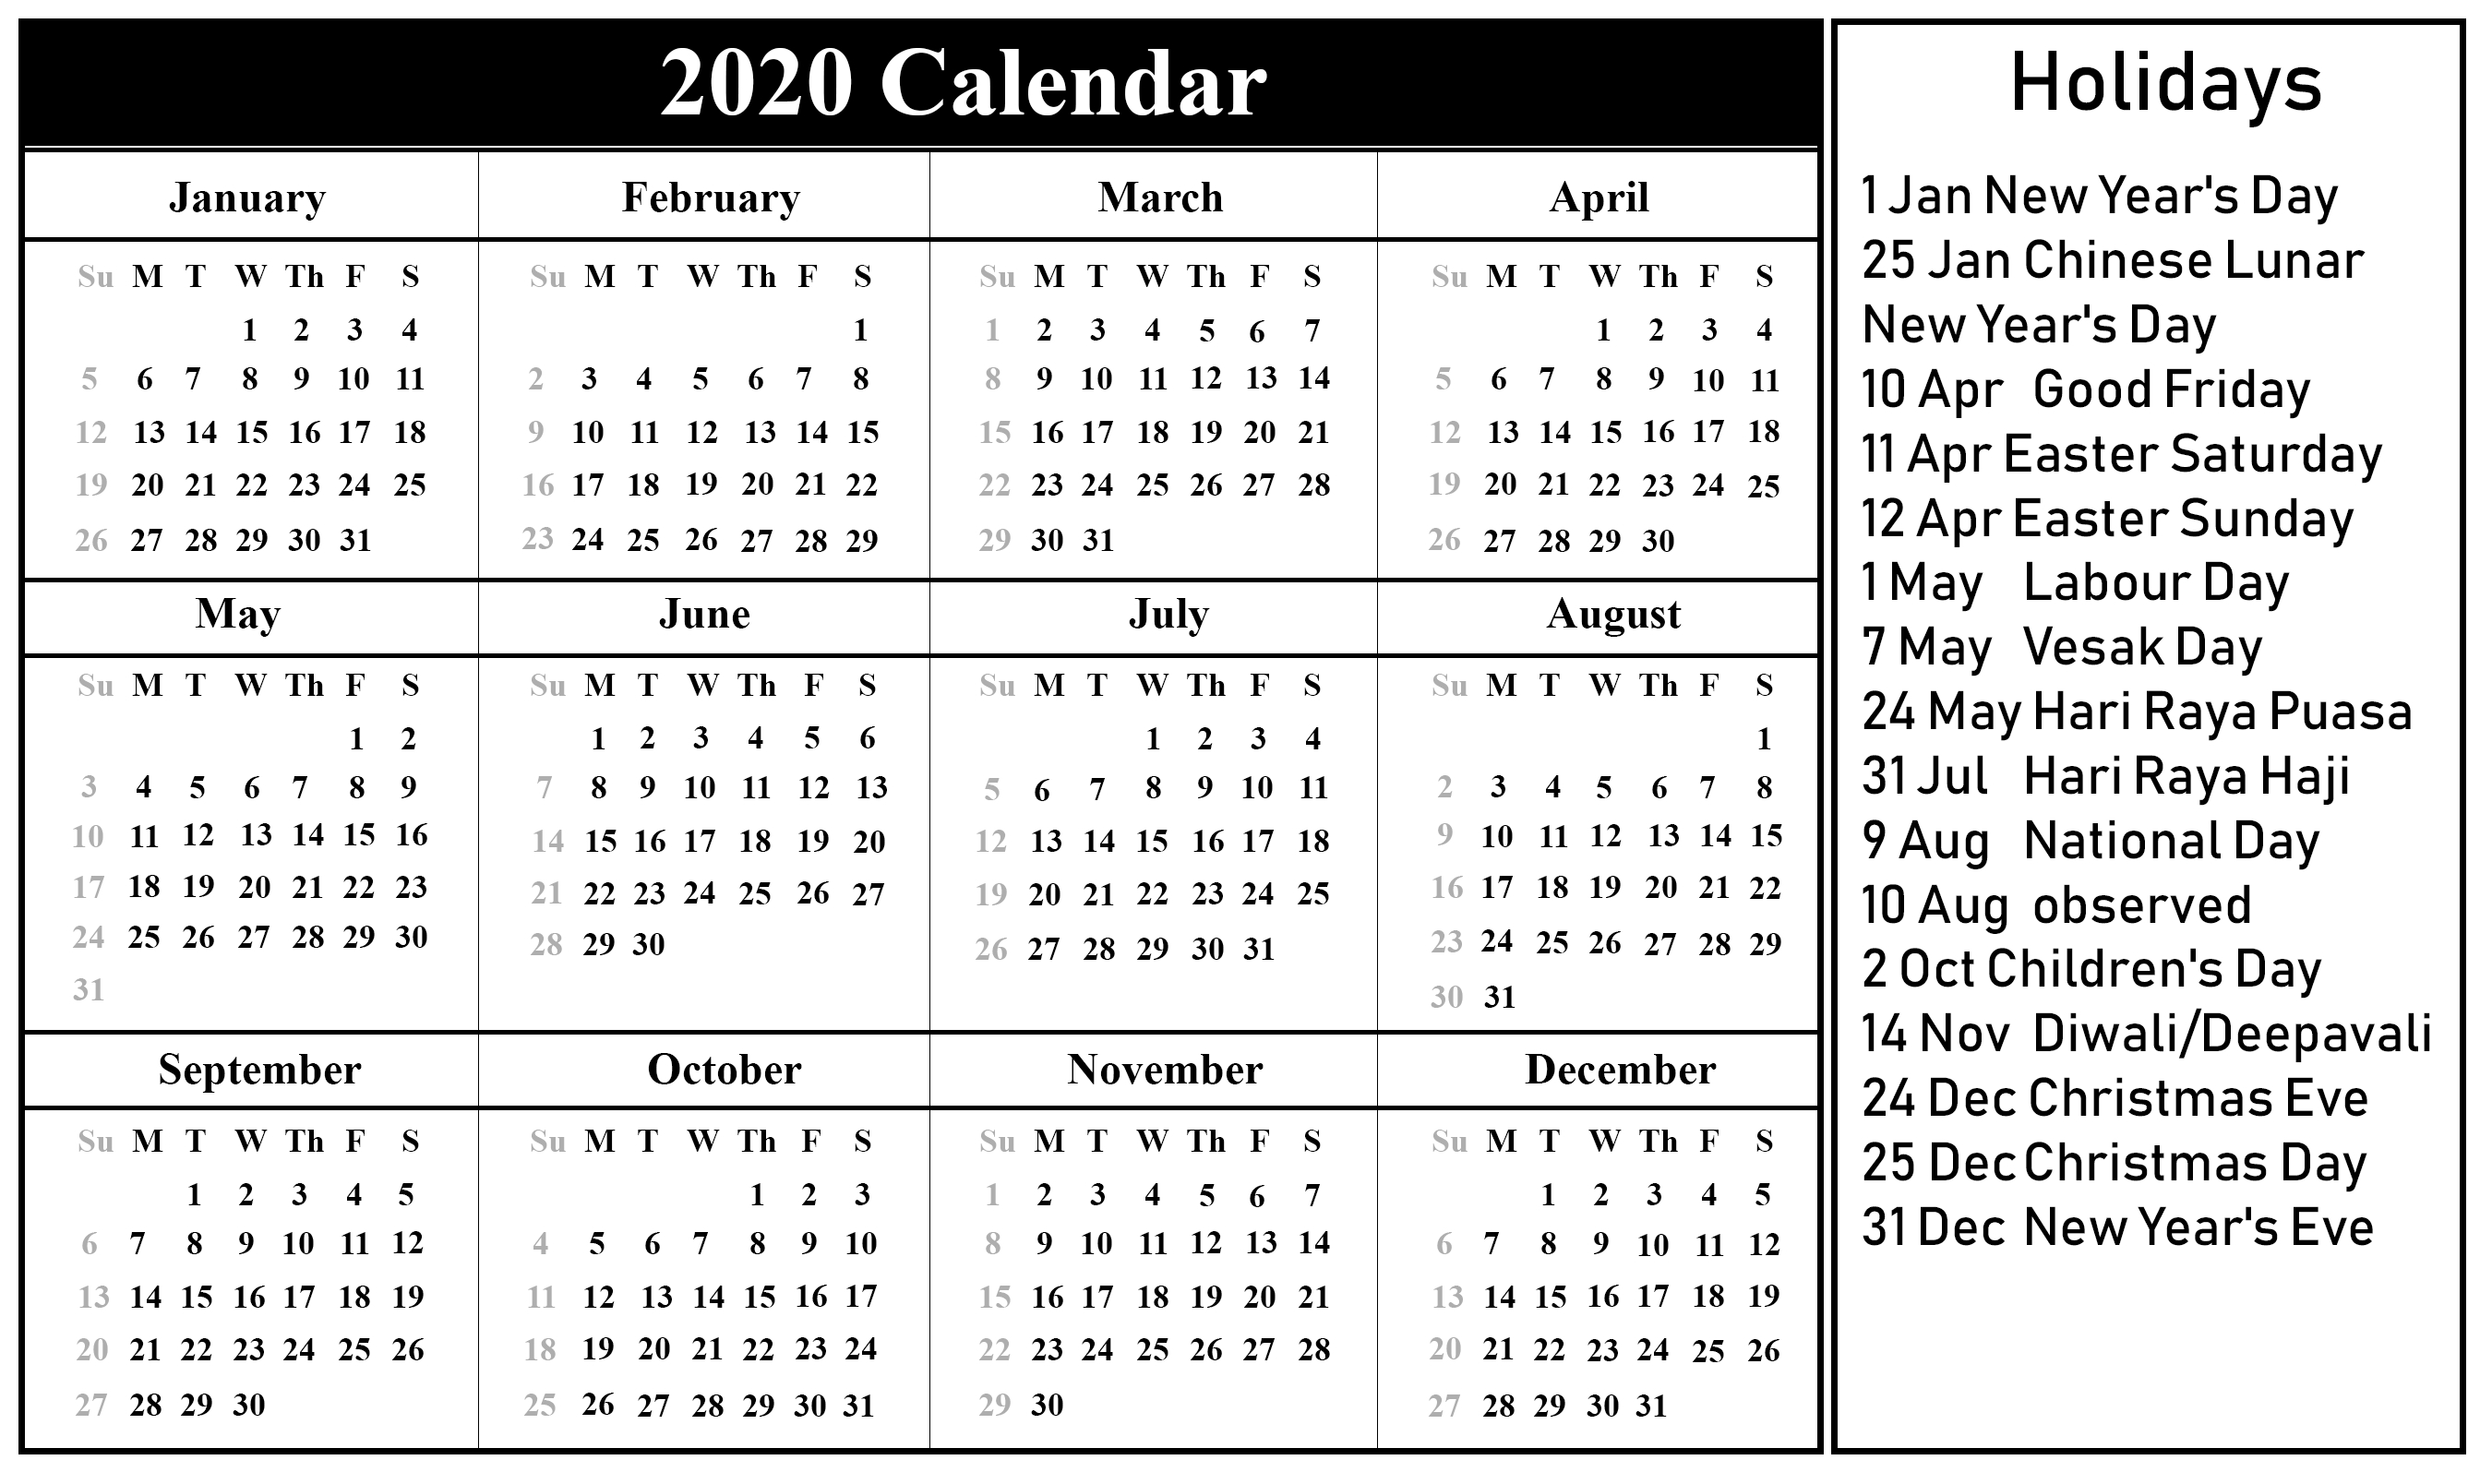 Printable 2020 Calendar With Holidays | Monthly Calendar intended for Printable Month At A Glance Calendar 2020